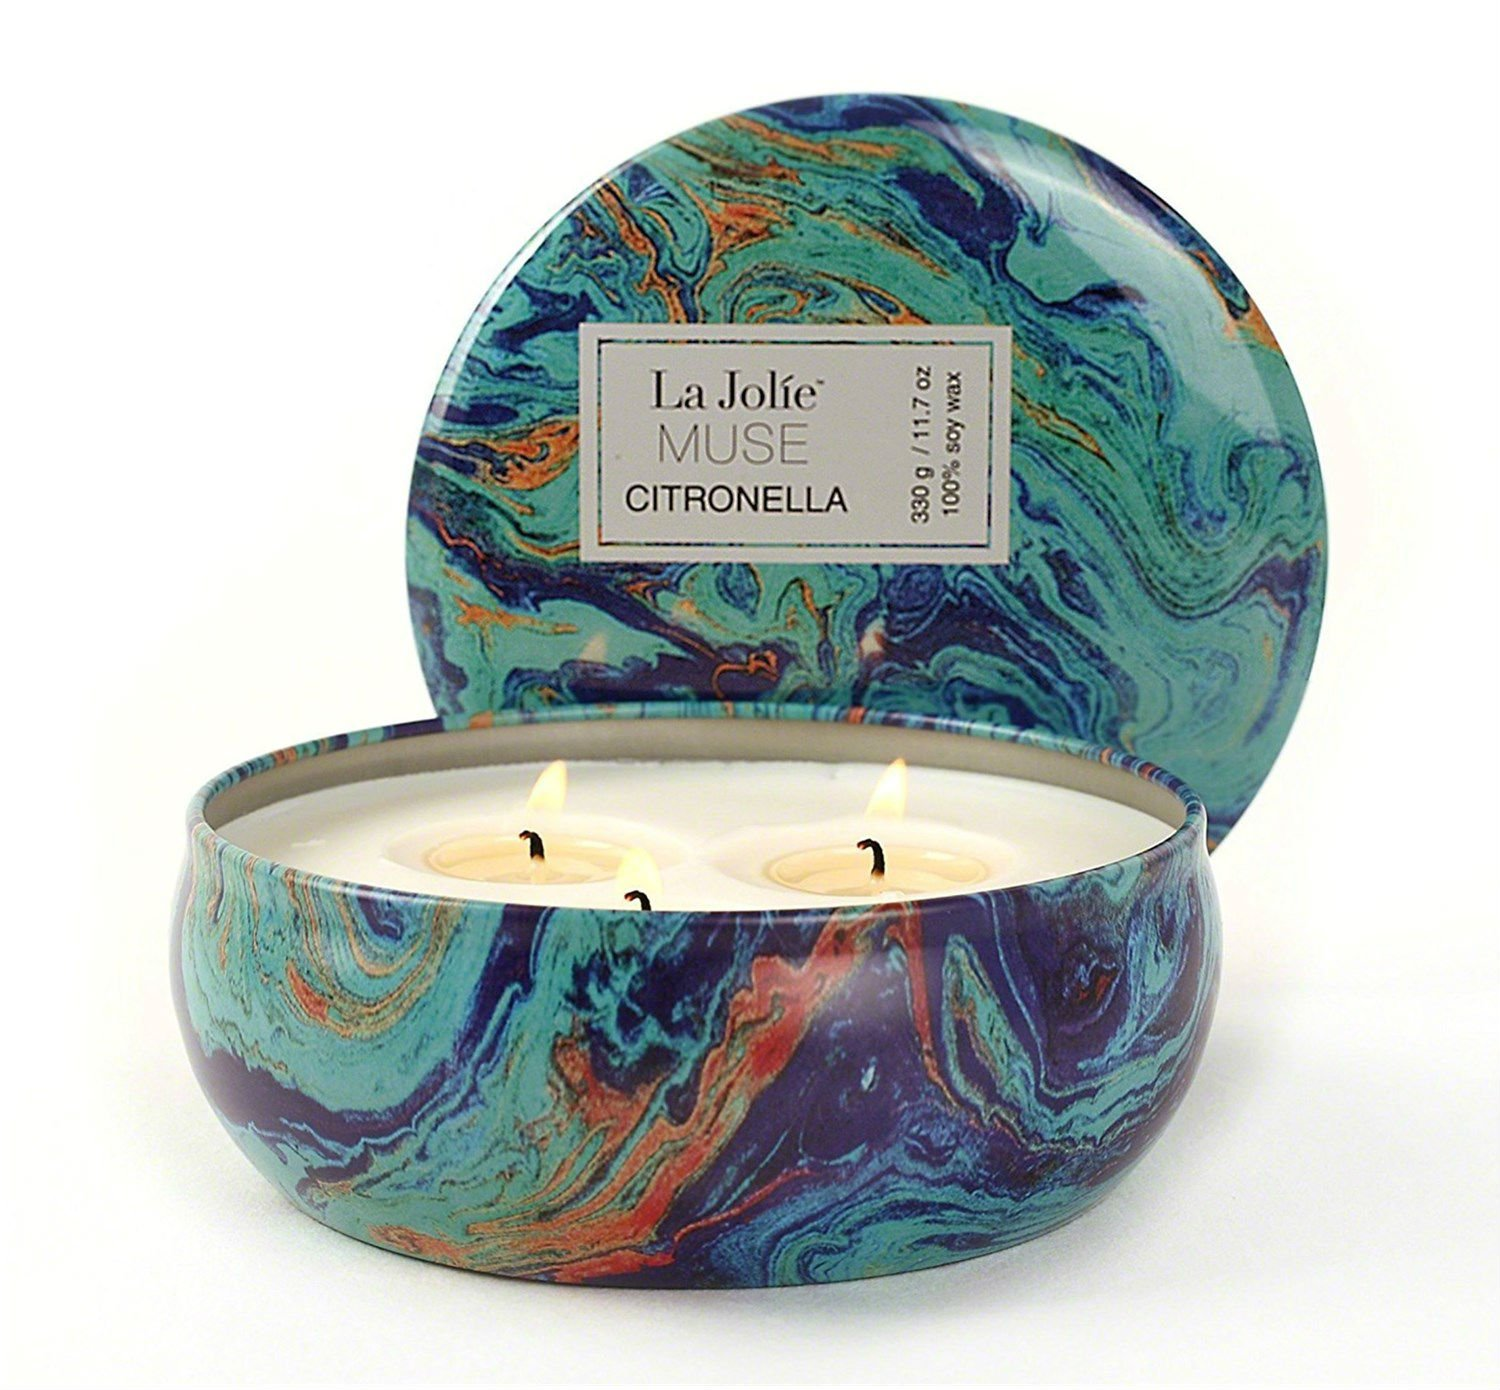 LA JOLIE MUSE Citronella Candle Scented Soy Wax 3 Wick Tin, 75 Hour Burn, Outdoor and Indoor